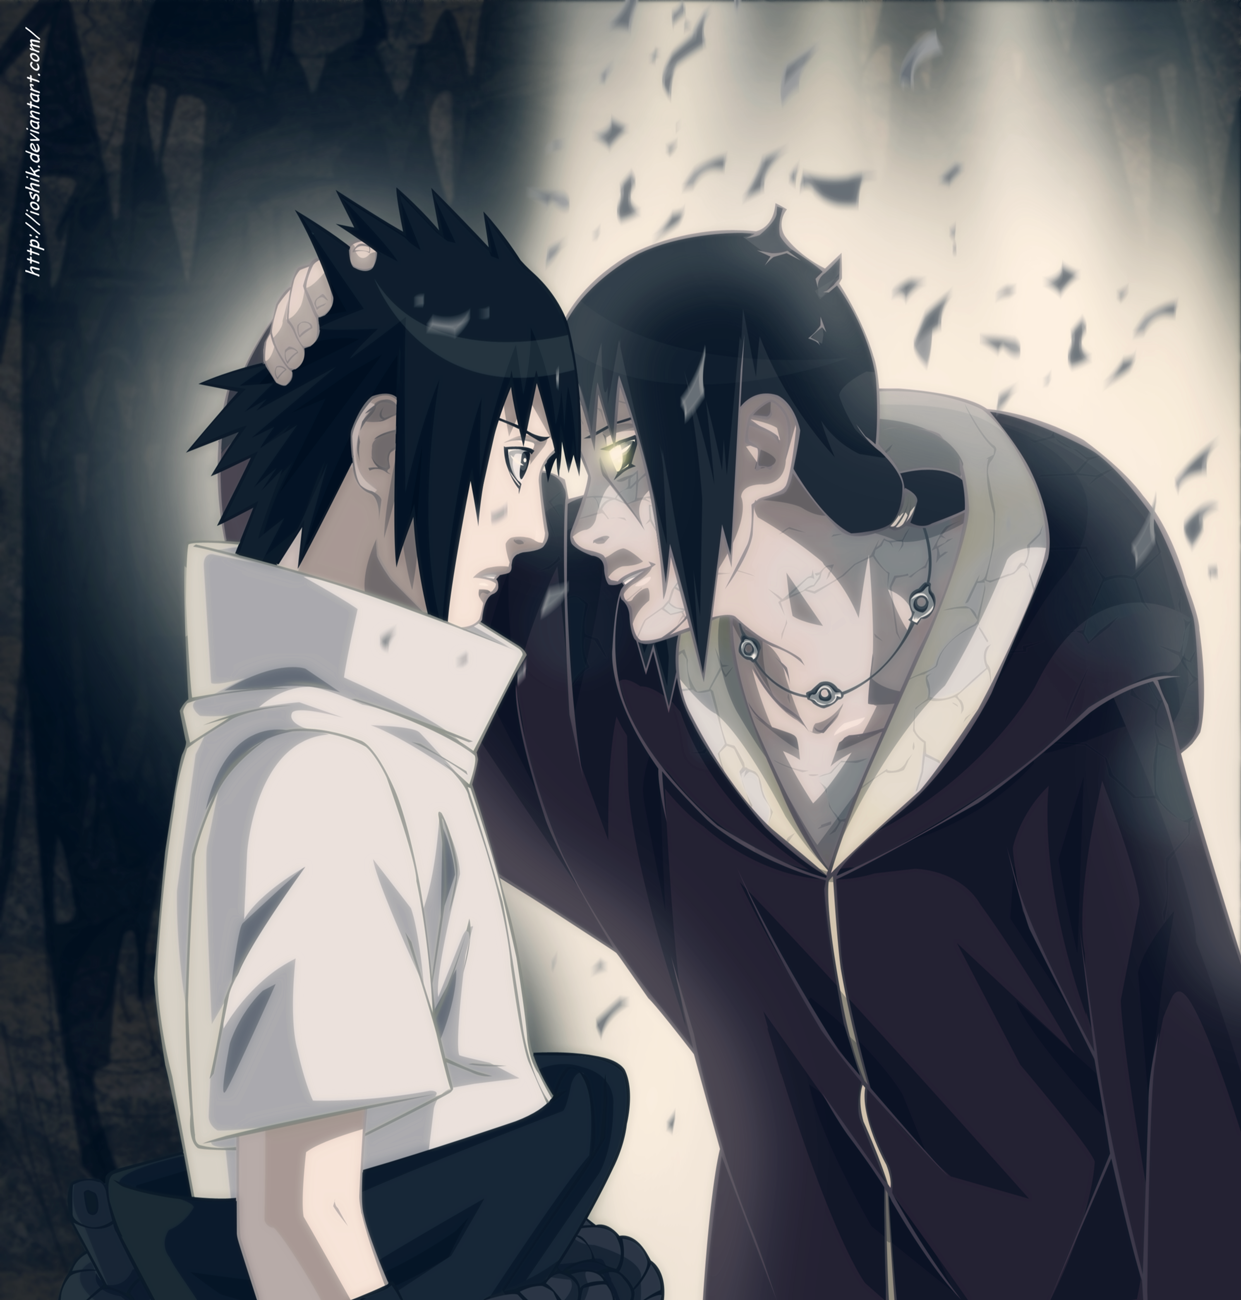 Itachi And Sasuke Vs Kabuto Itachi loves sasuke � edo